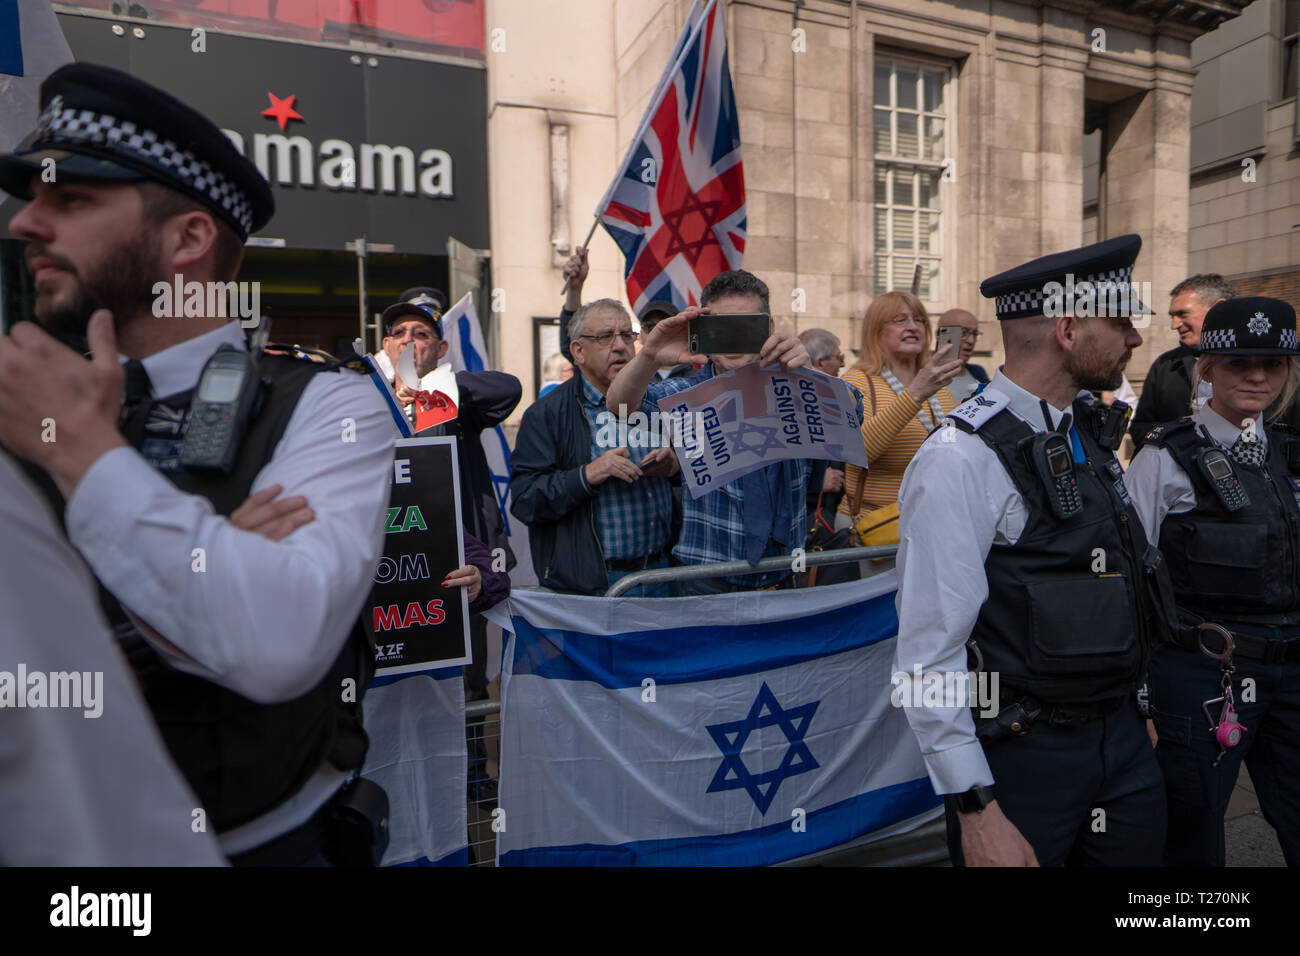 London, UK. 30th March 2019. Israel supporters at a pro-Palestine demonstration (Exist, Resist Return) outside the Israel embassy in London. Photo date: Saturday, March 30, 2019. Photo: Roger Garfield/Alamy Live News Credit: Roger Garfield/Alamy Live News - Stock Image